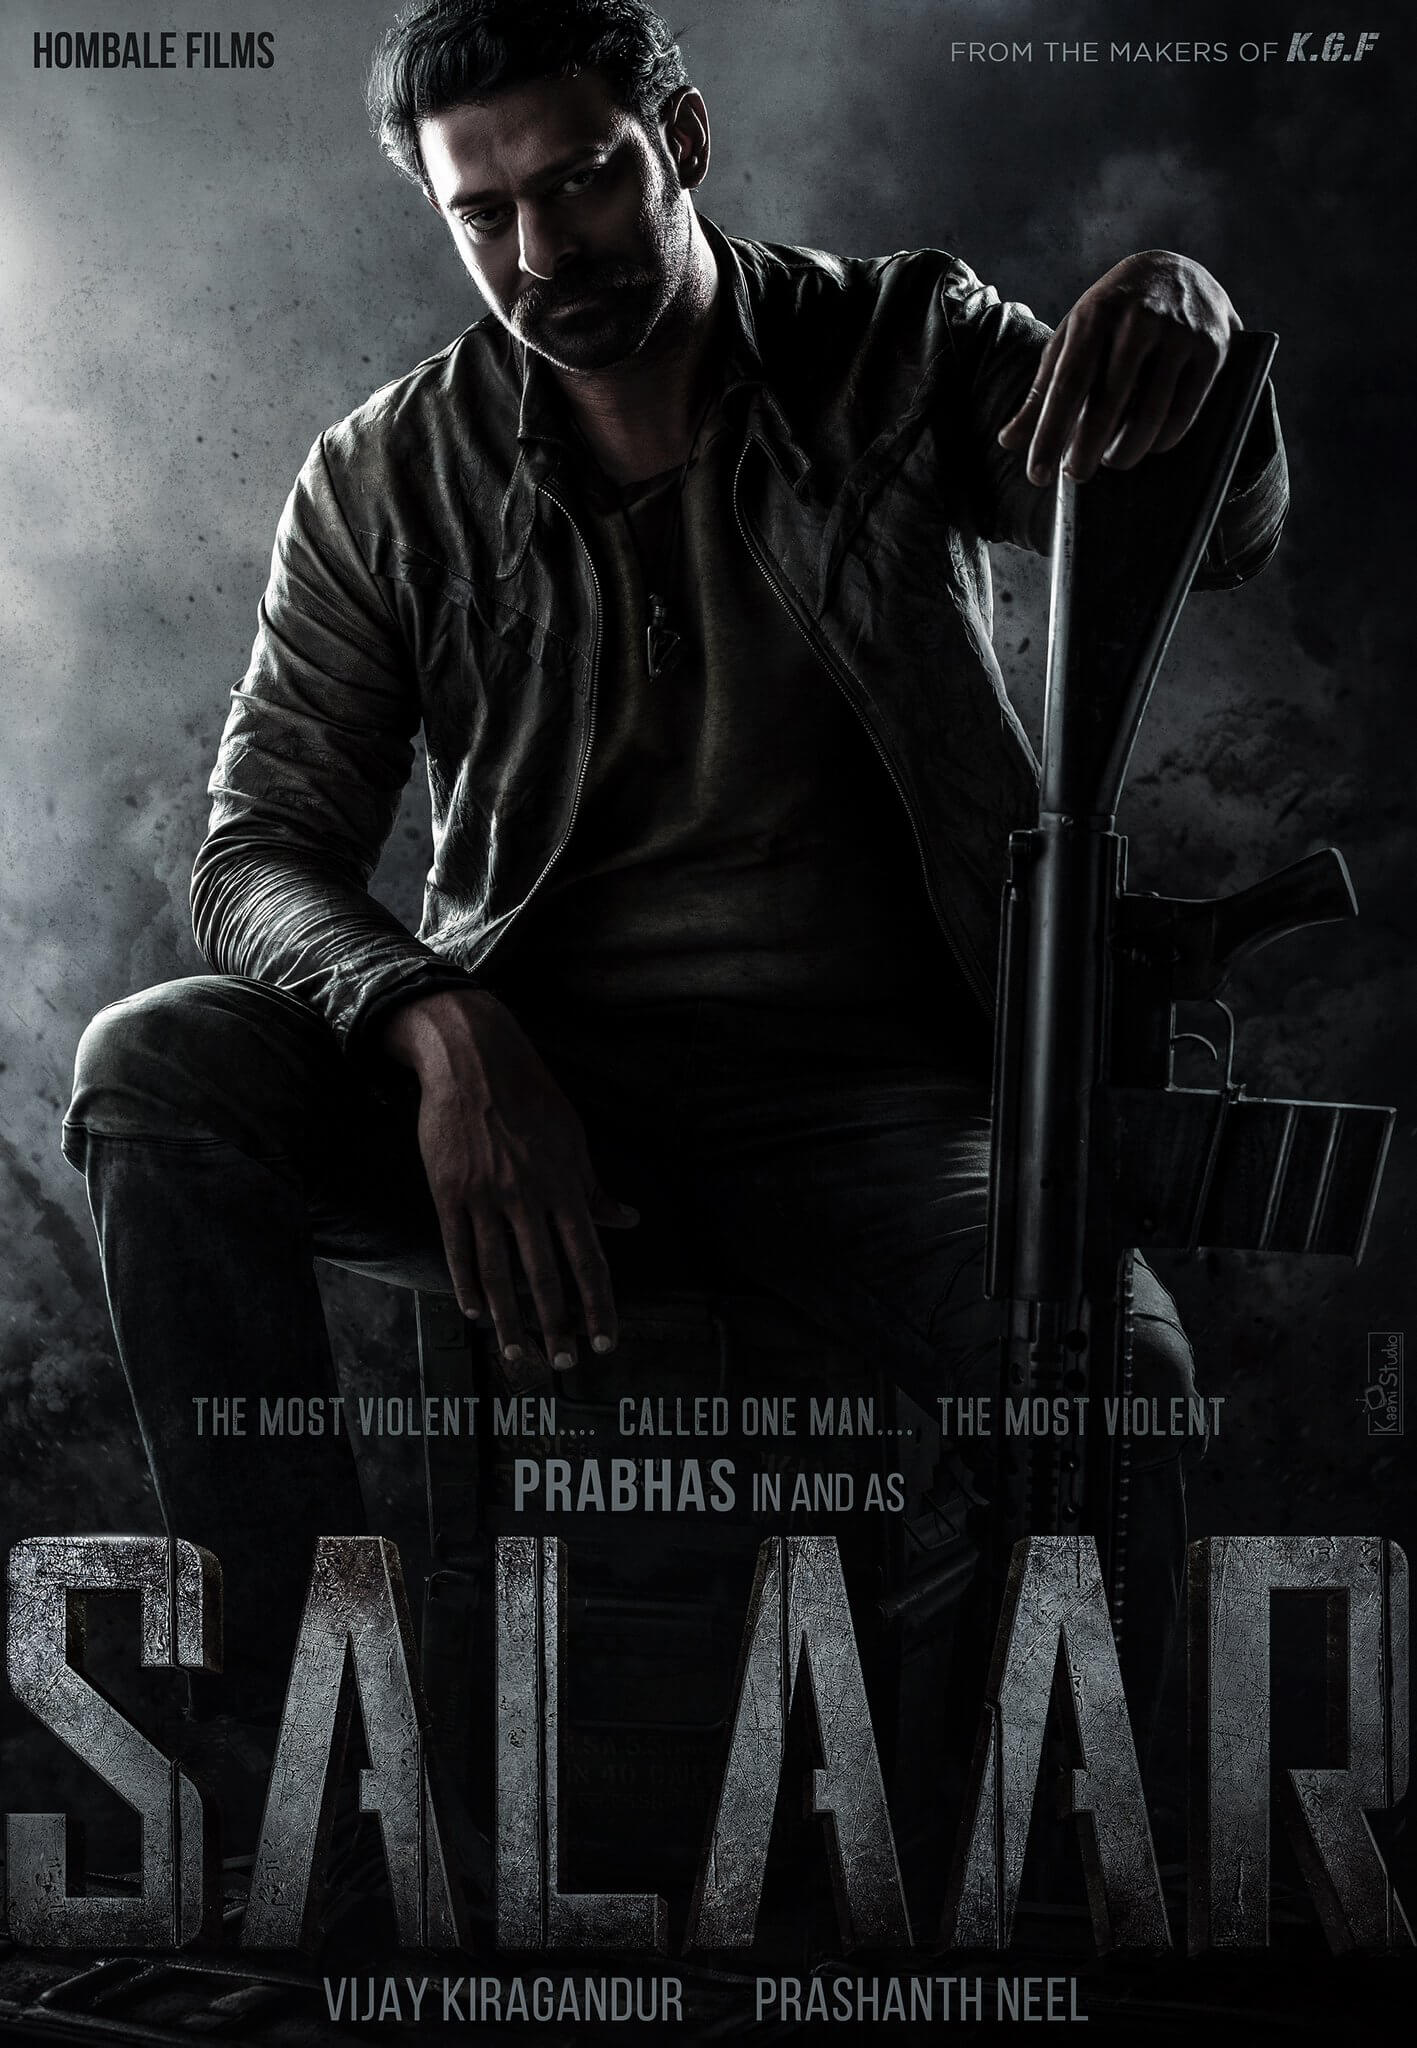 KGF Producers Announce New Multilingual Titled 'Salaar', Starring Prabhas